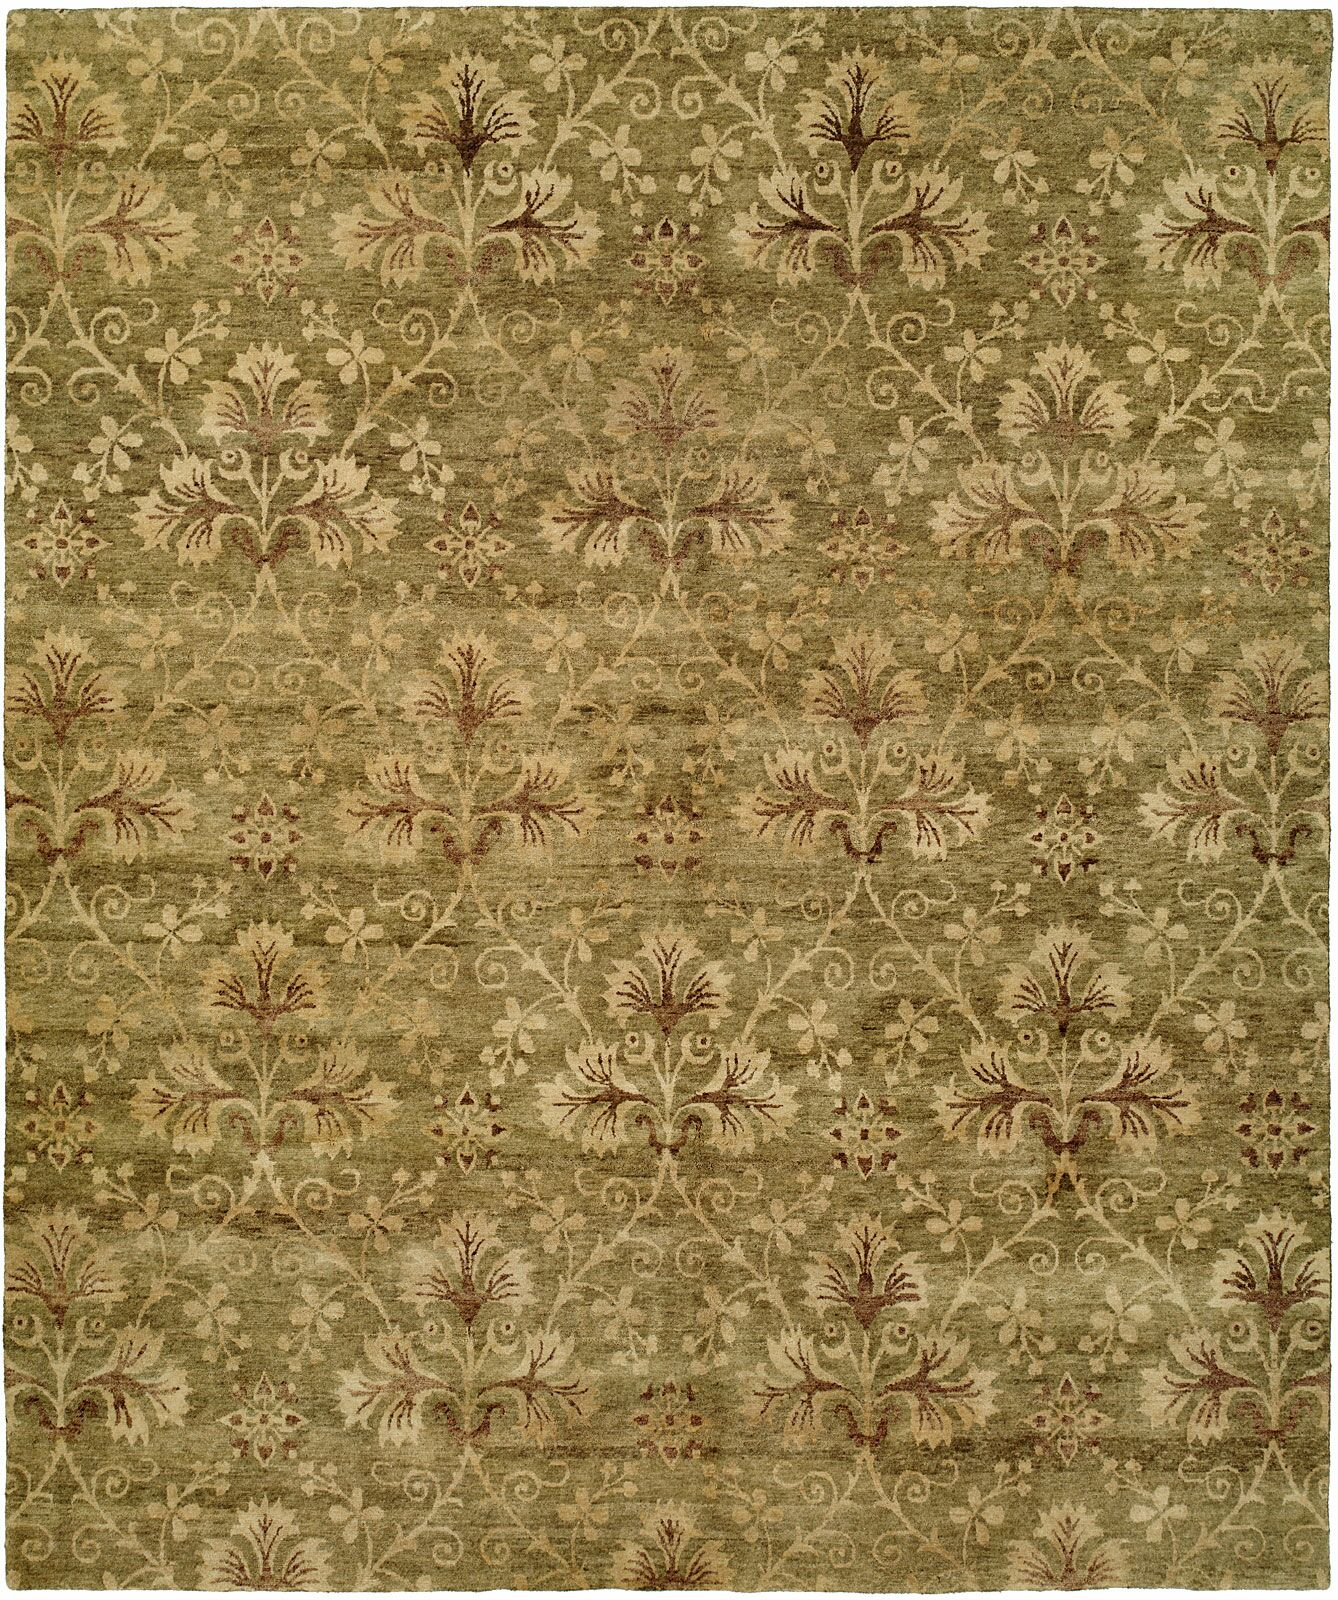 Anthony Hand-Woven Green Area Rug Rug Size: 6' x 9'